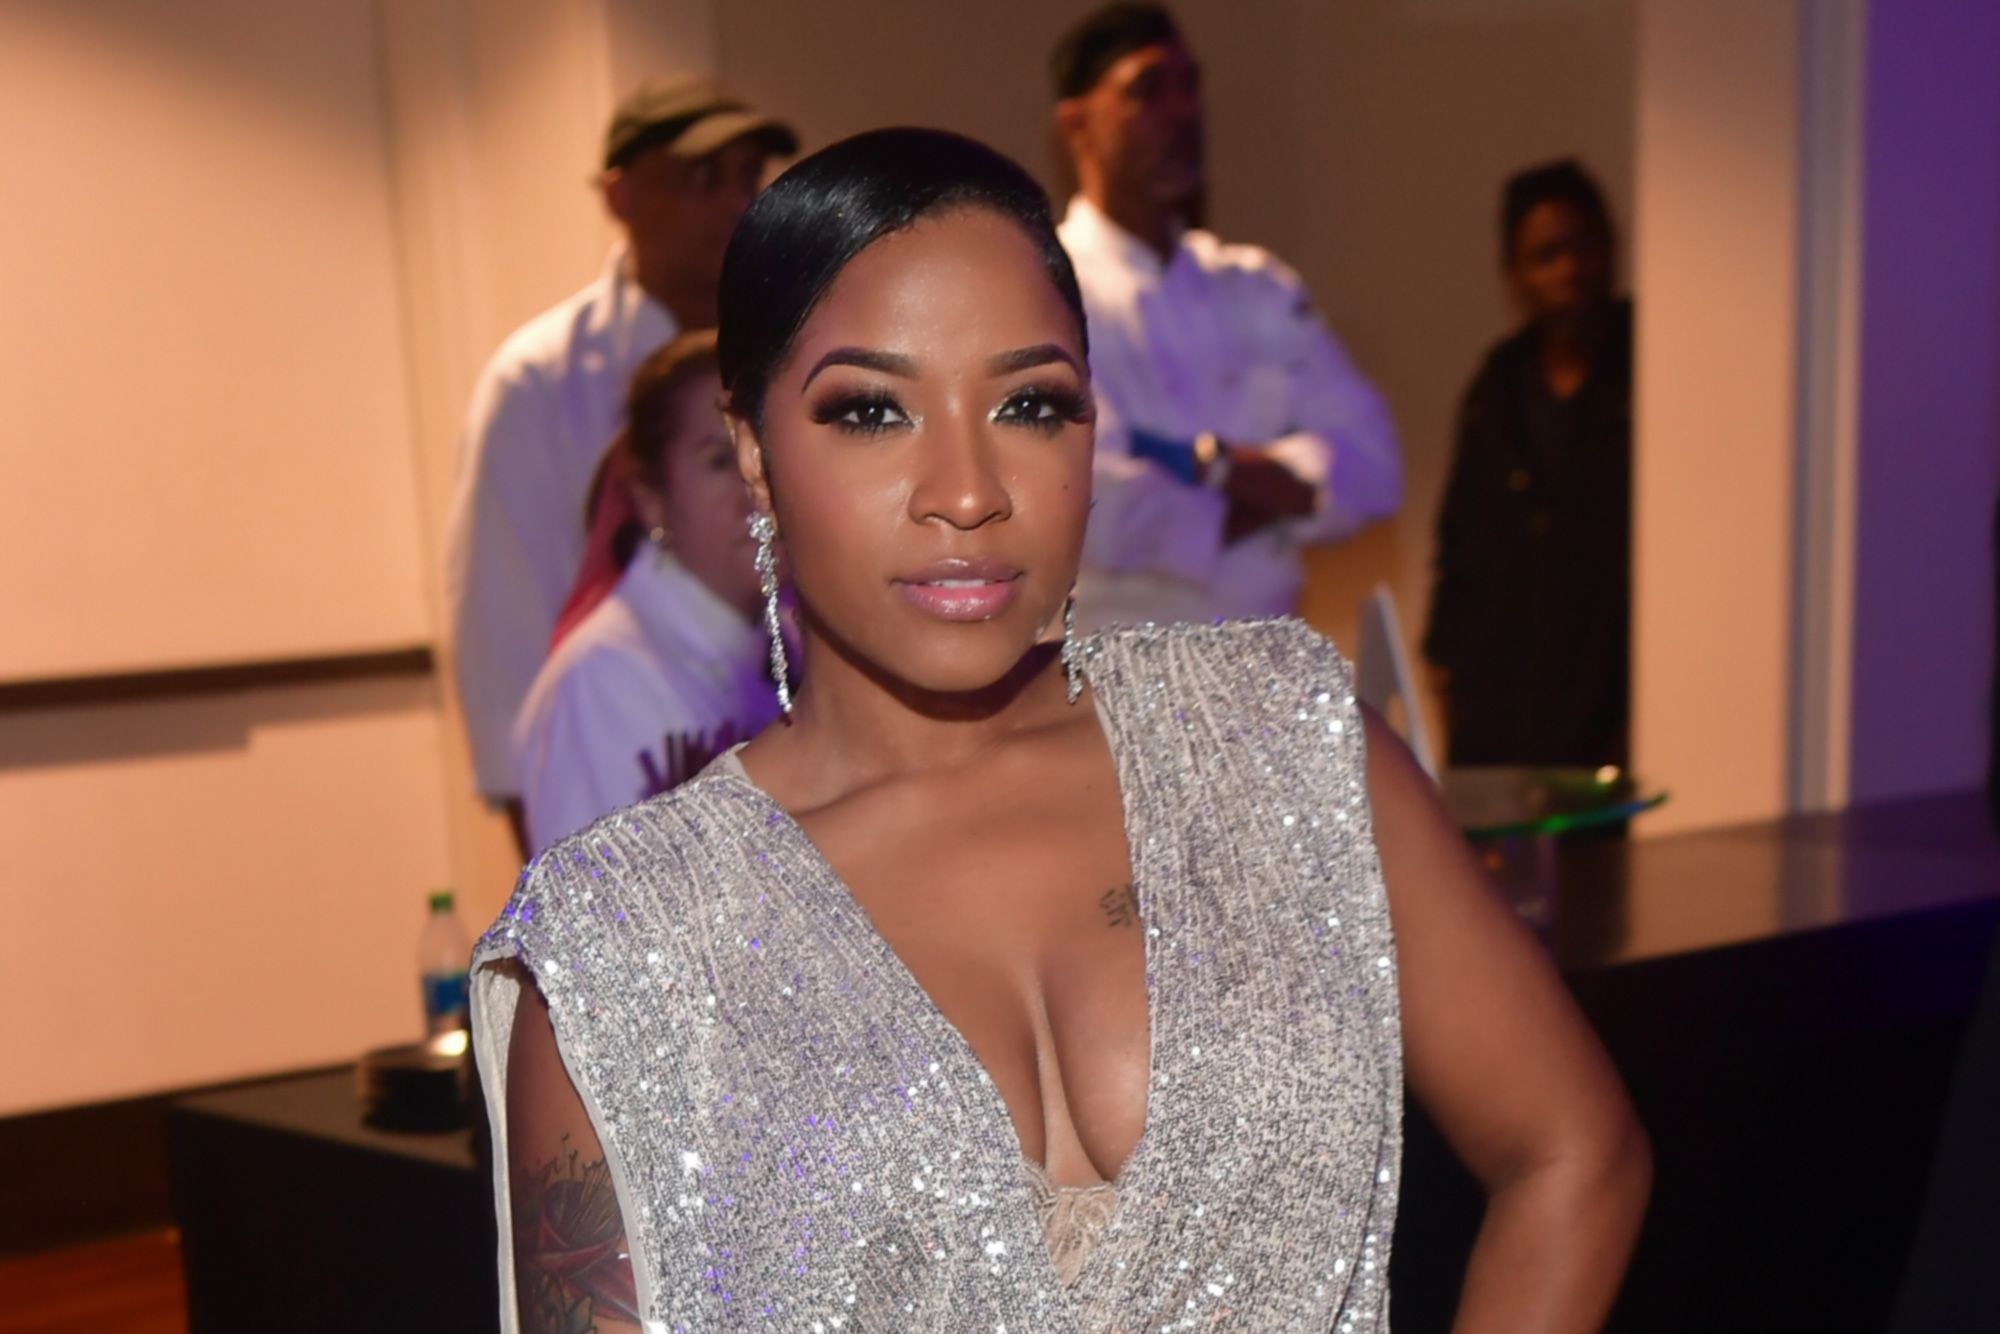 Toya Johnson Shares A Video Featuring Reign Rushing Dancing And Makes Fans' Day